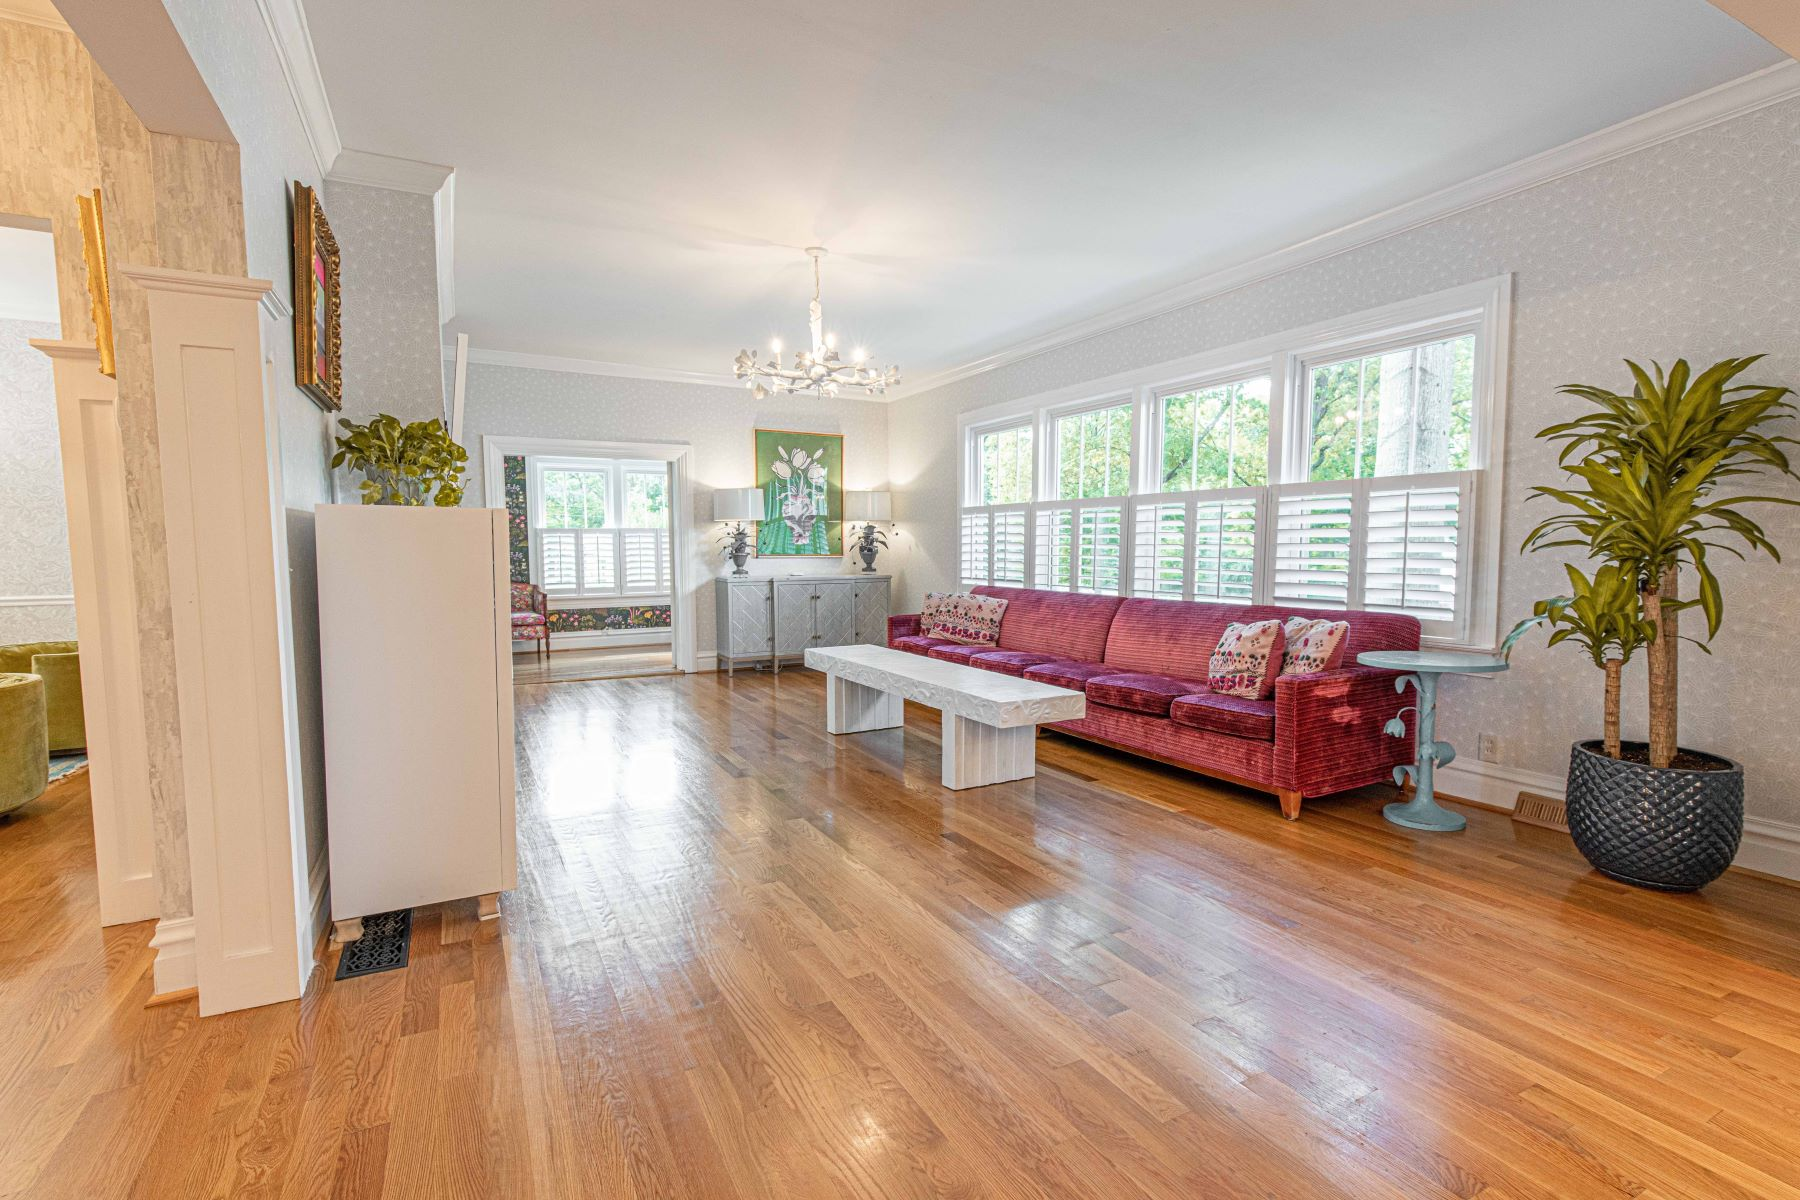 Additional photo for property listing at Designer renovated farmhouse on over 1/2 acre in Glendale! 808 East Essex Avenue Glendale, Missouri 63122 United States